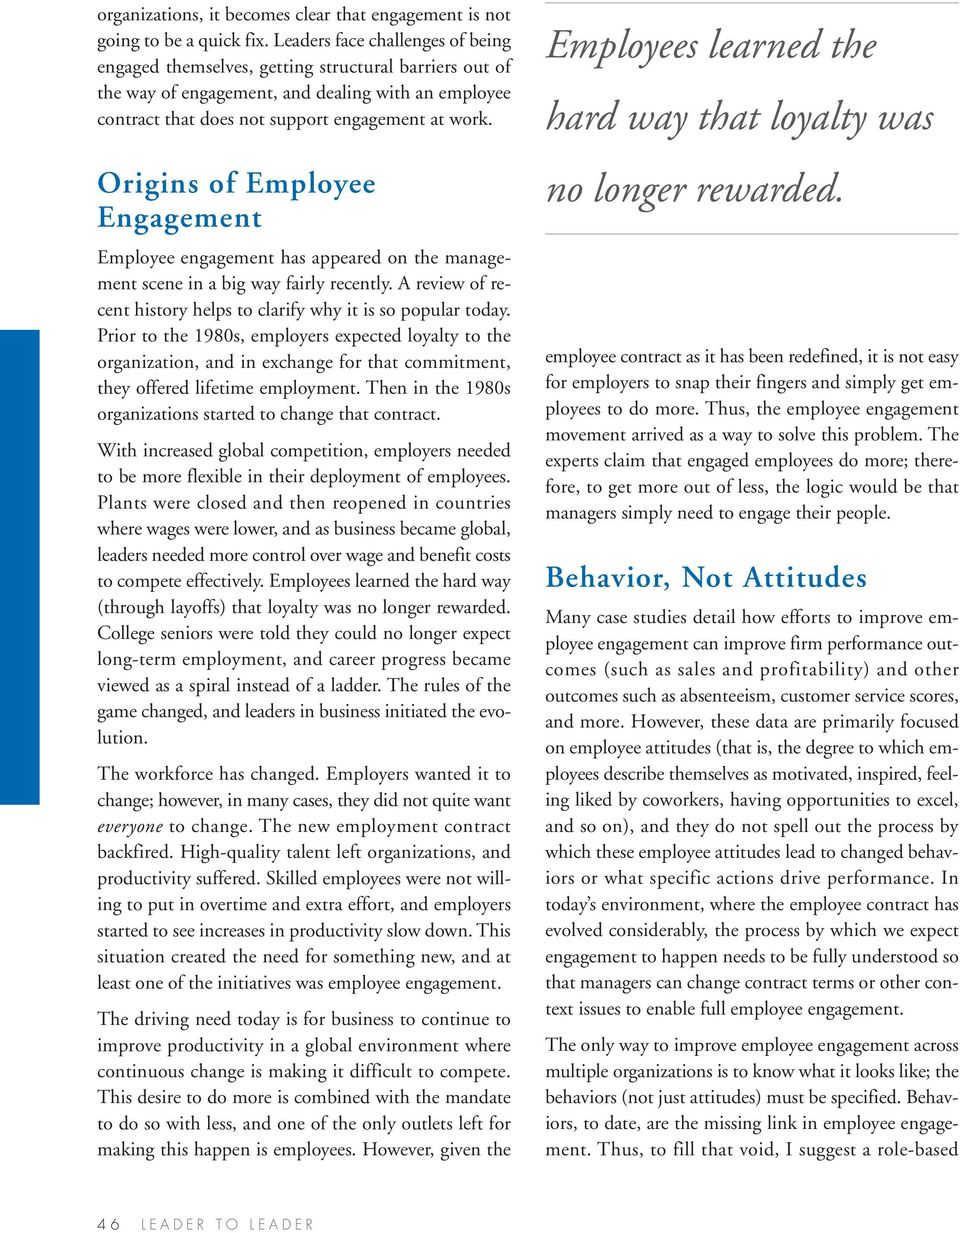 Origins of Employee Engagement Employee engagement has appeared on the management scene in a big way fairly recently. A review of recent history helps to clarify why it is so popular today.